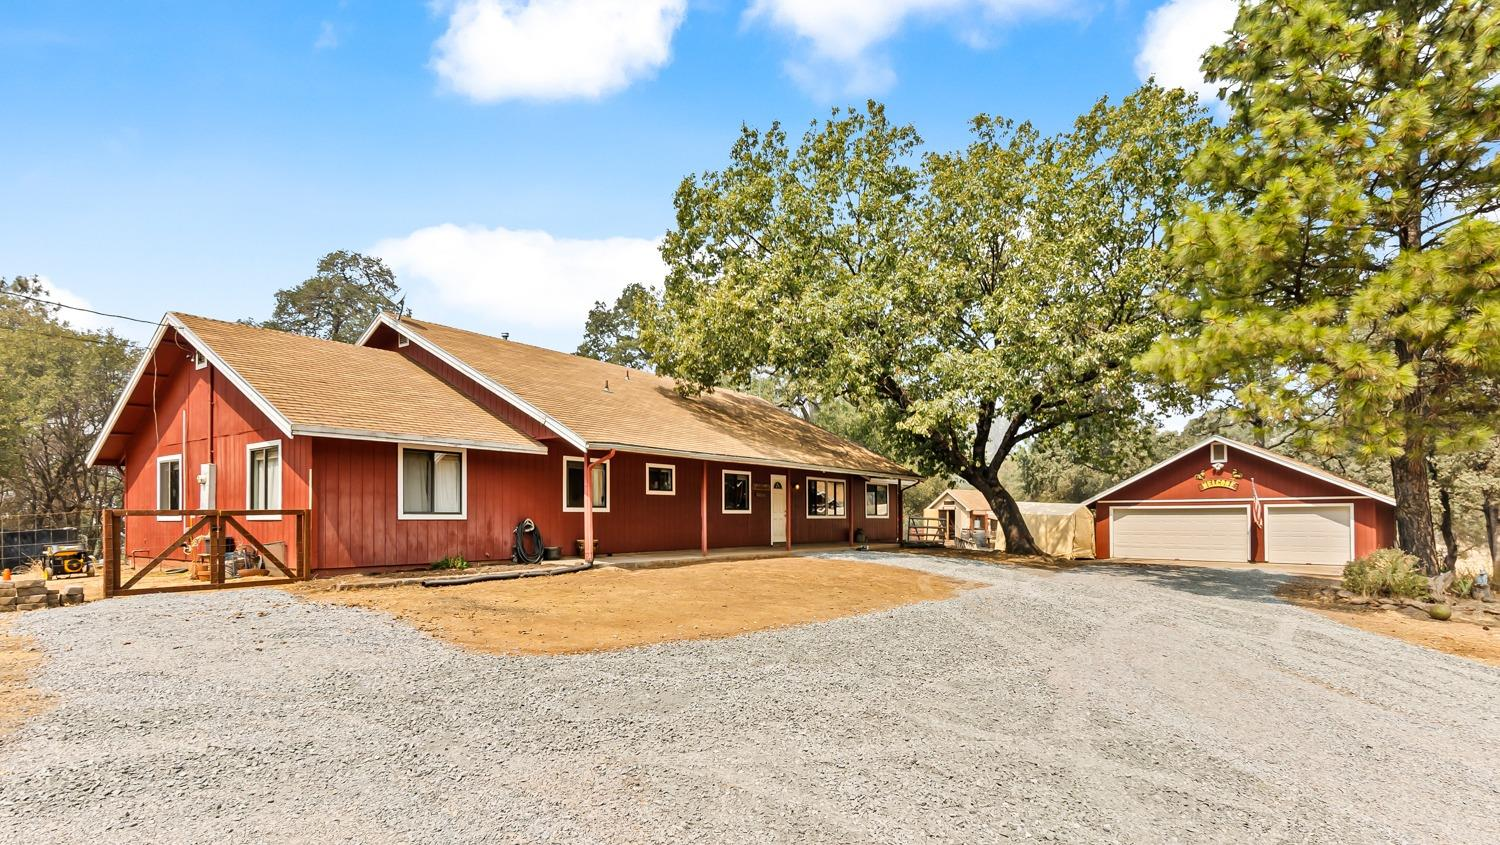 This Ranchette on 4.99 acres offers gorgeous views, spectacular sunsets and gentle, usable acreage. Versatile open floor plan offers a family room w/warm wood stove, a spacious kitchen w/pantry, formal living & dining plus a bonus room w/outdoor access. Could be in Law quarter or home school classroom. Outdoor living complete w/pergola covered patio, room to roam. Fenced, cross-fenced & gated w/a tool shed & an oversized 3-car garage w/220v. Boasting an Ag well, public water -Homestead ready, bring all your animals. A slice of heaven w/privacy, majestic oaks & a serene setting 15 minutes to town. 10-15 minutes to nearby American River swimming holes. Under an hour to Tahoe.